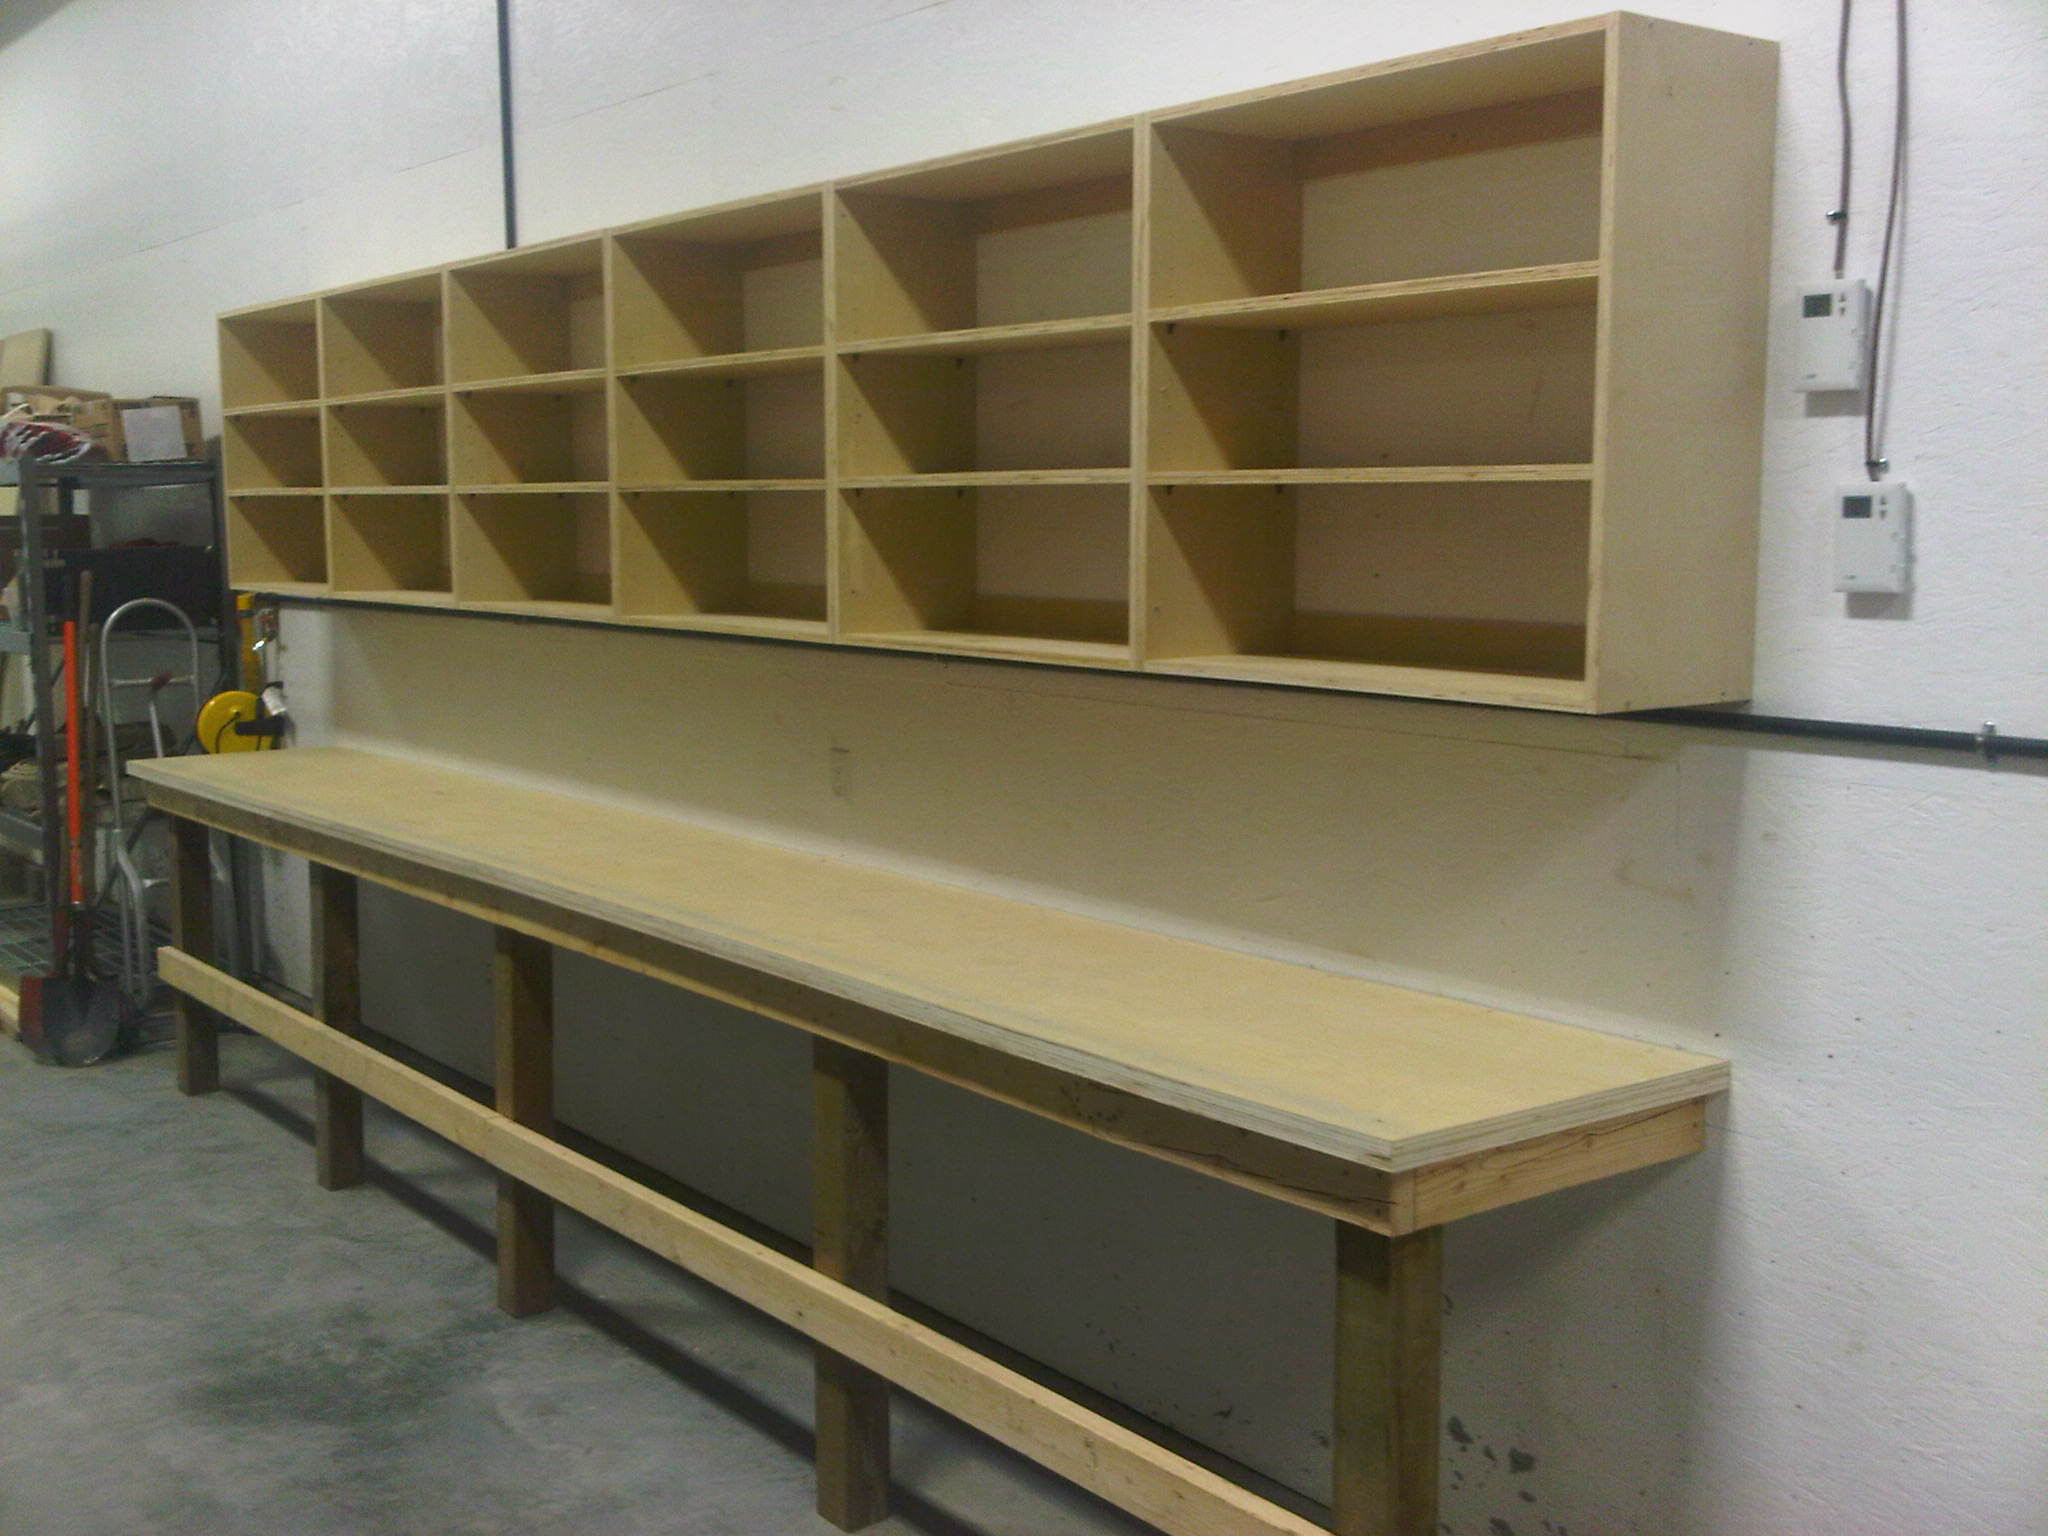 Our new workbench and shelves!